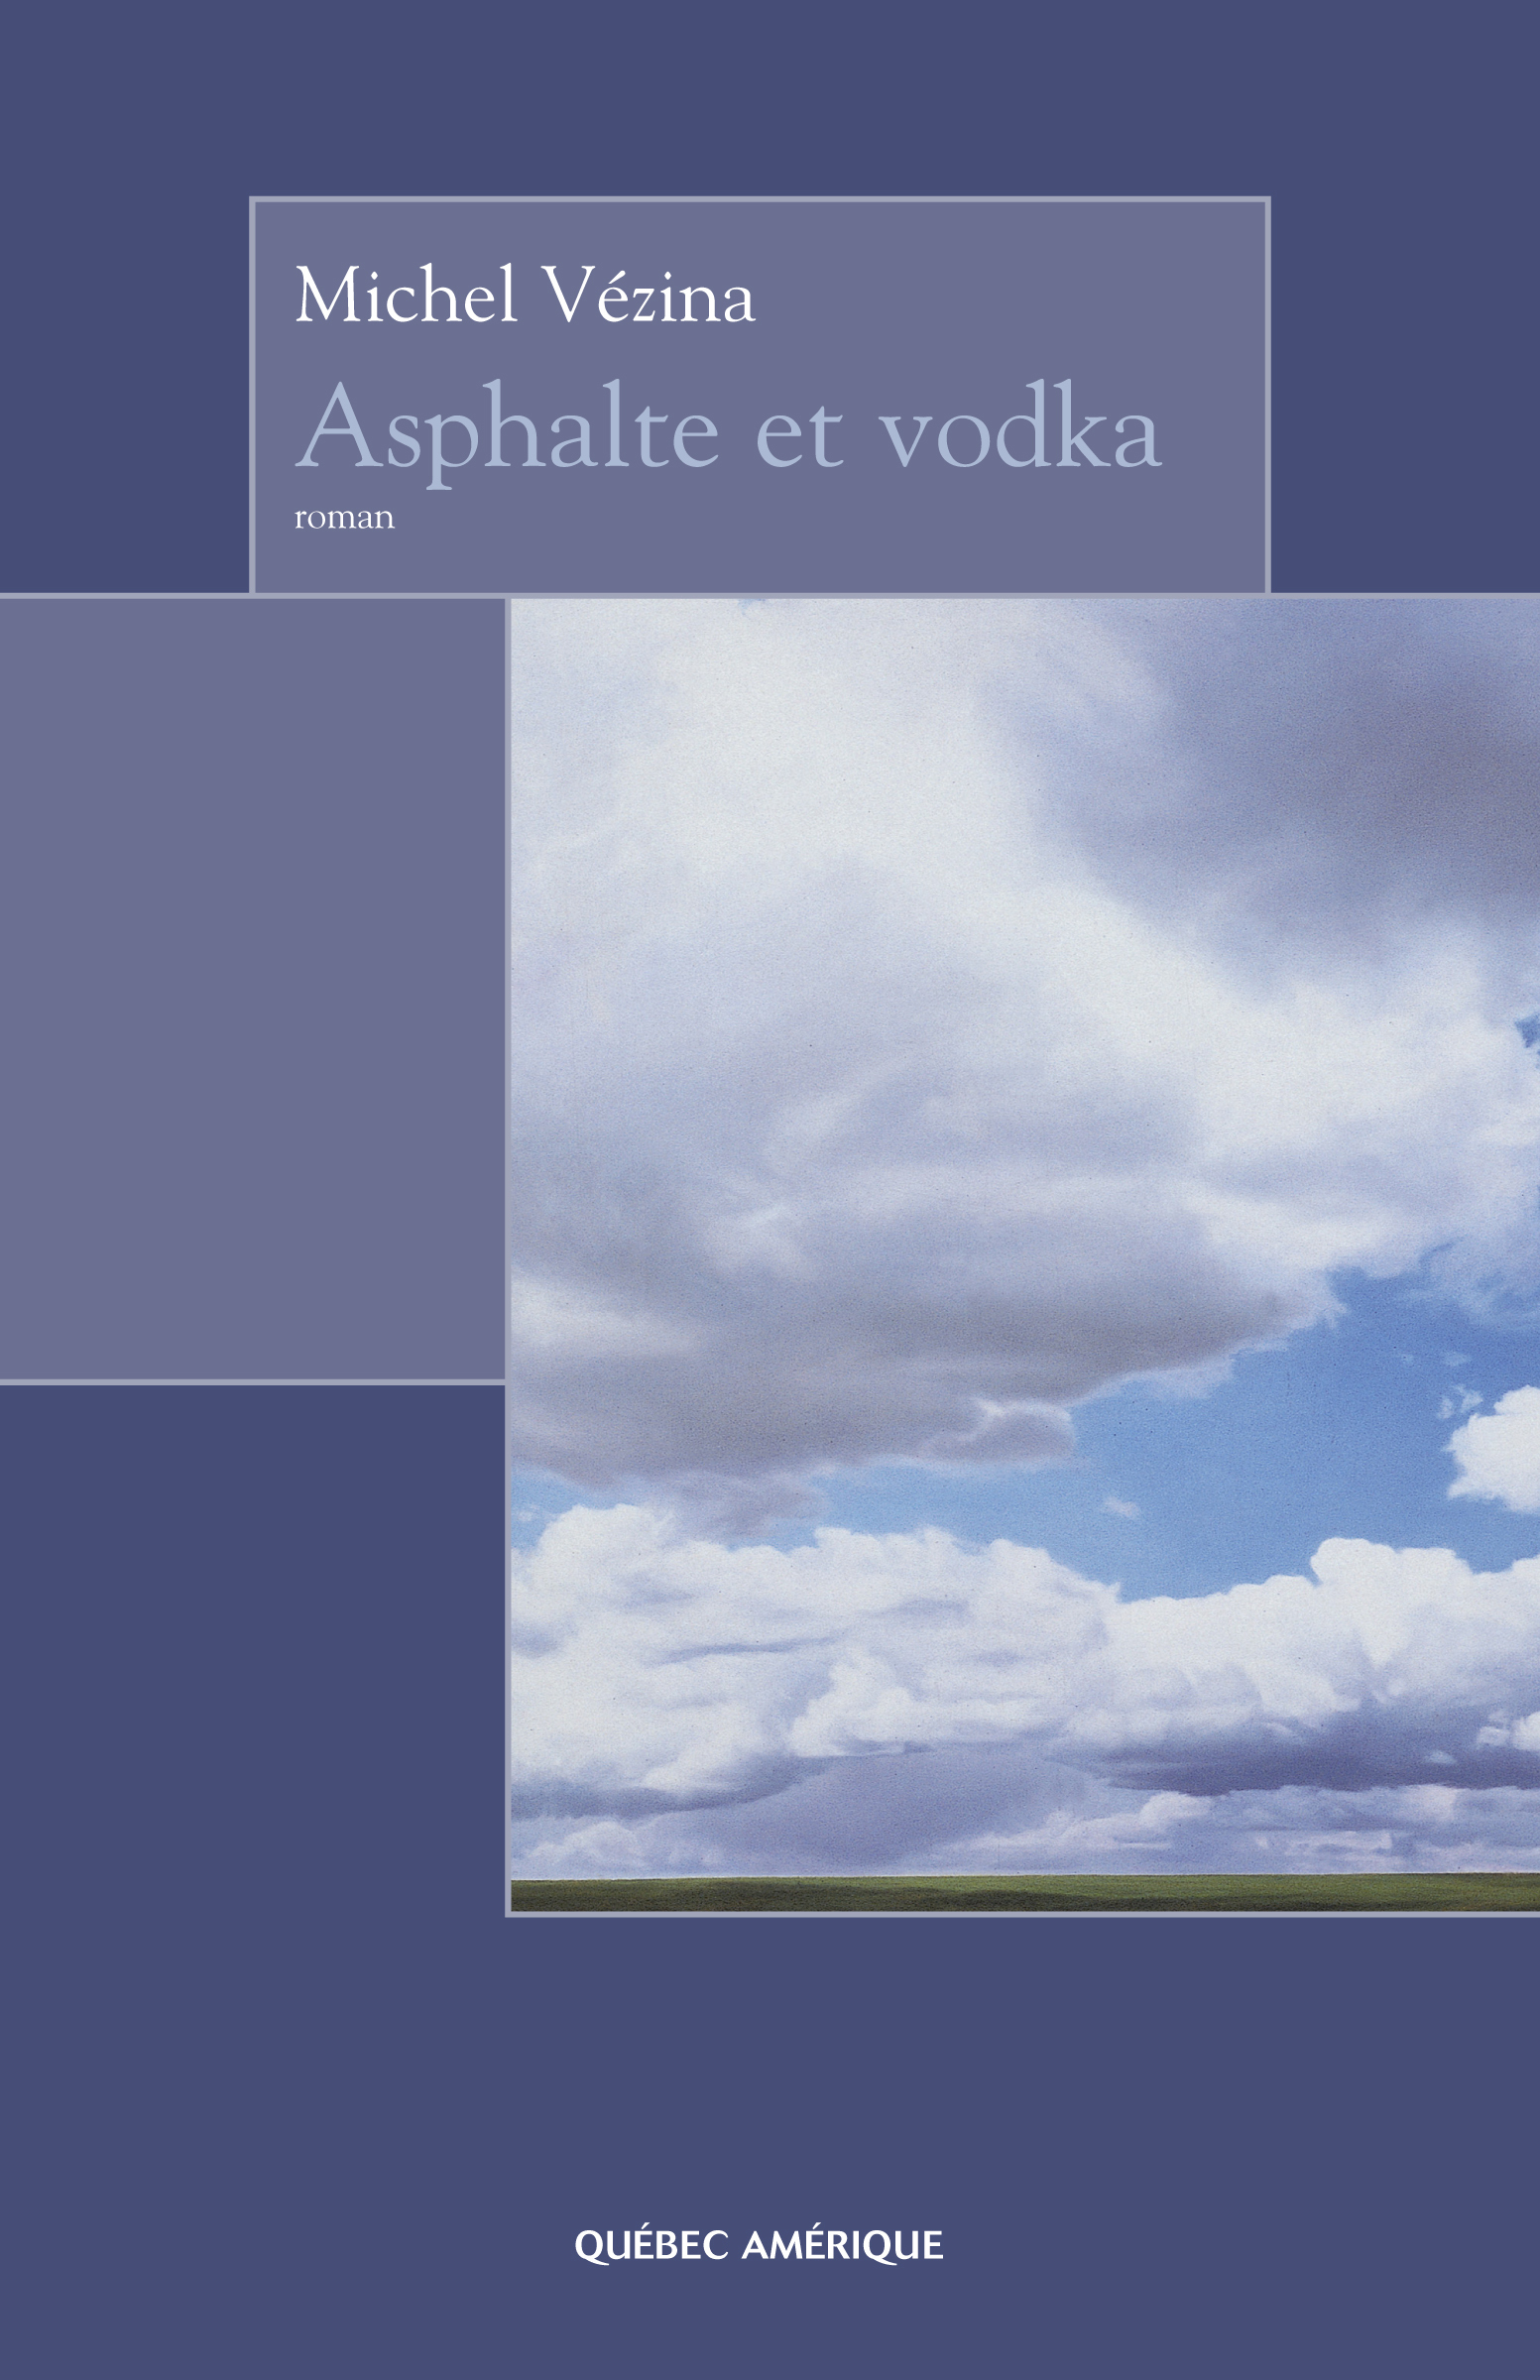 Asphalte et vodka